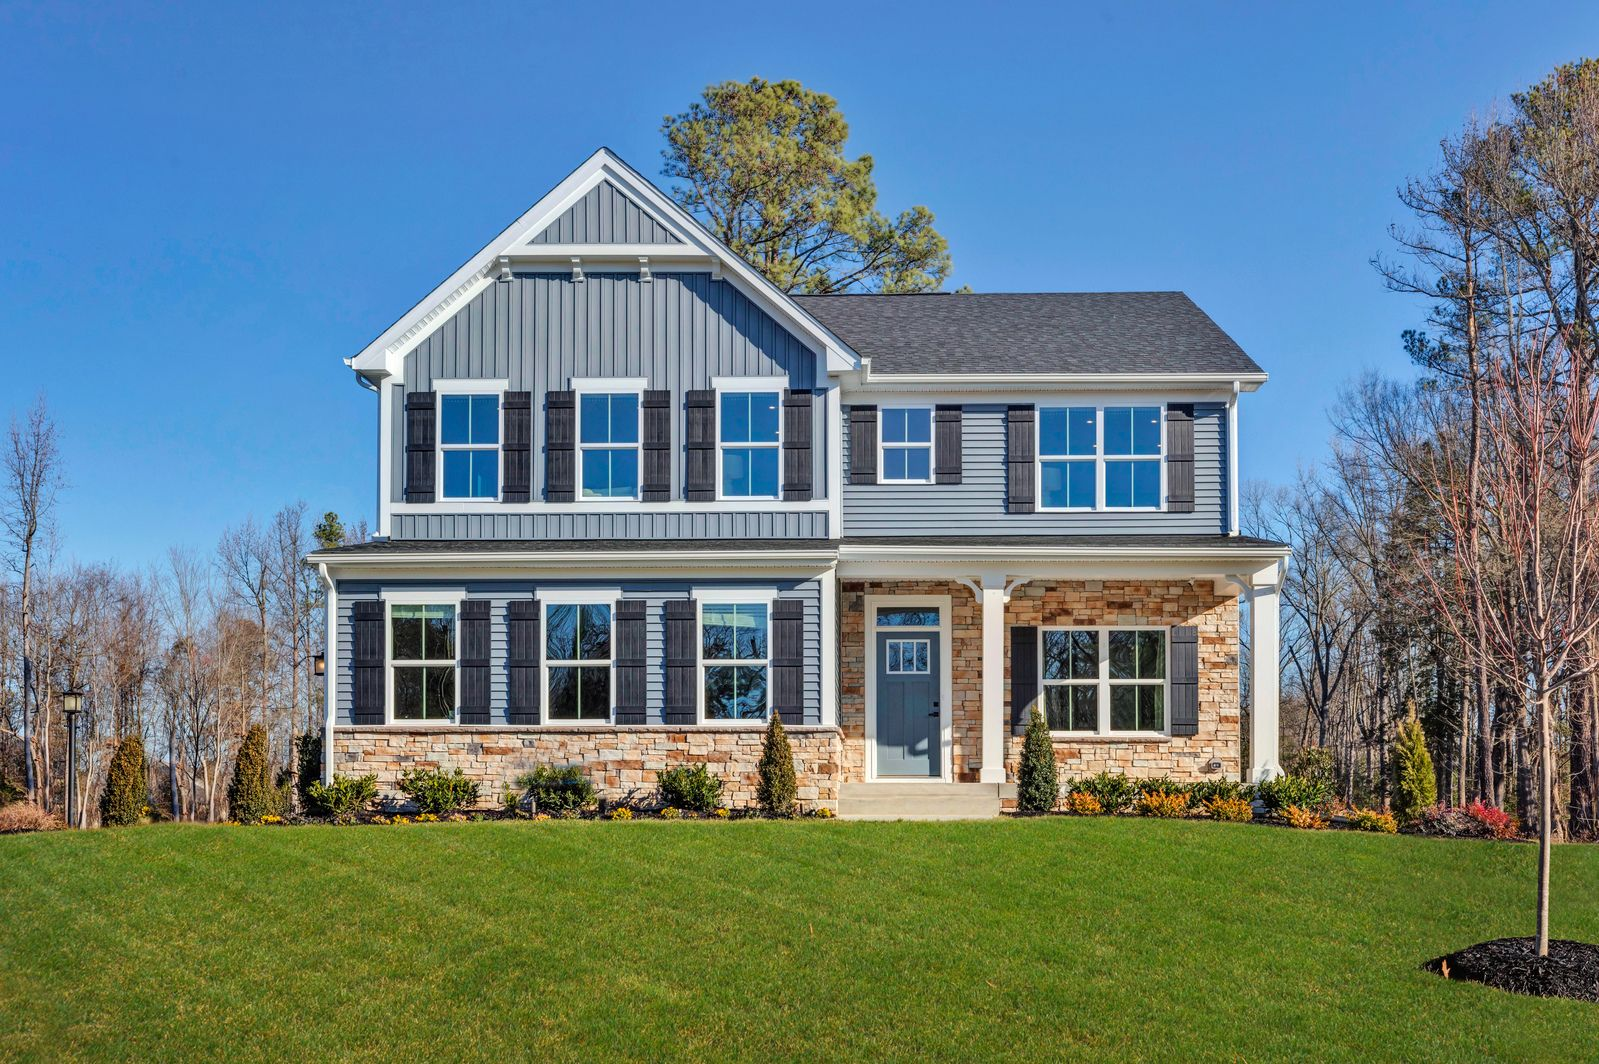 Grove Crossing - FINAL OPPORTUNITY:Last chance to own in Thomas Dale District's Grove Crossing!Click here to schedule your appointment before its too late!